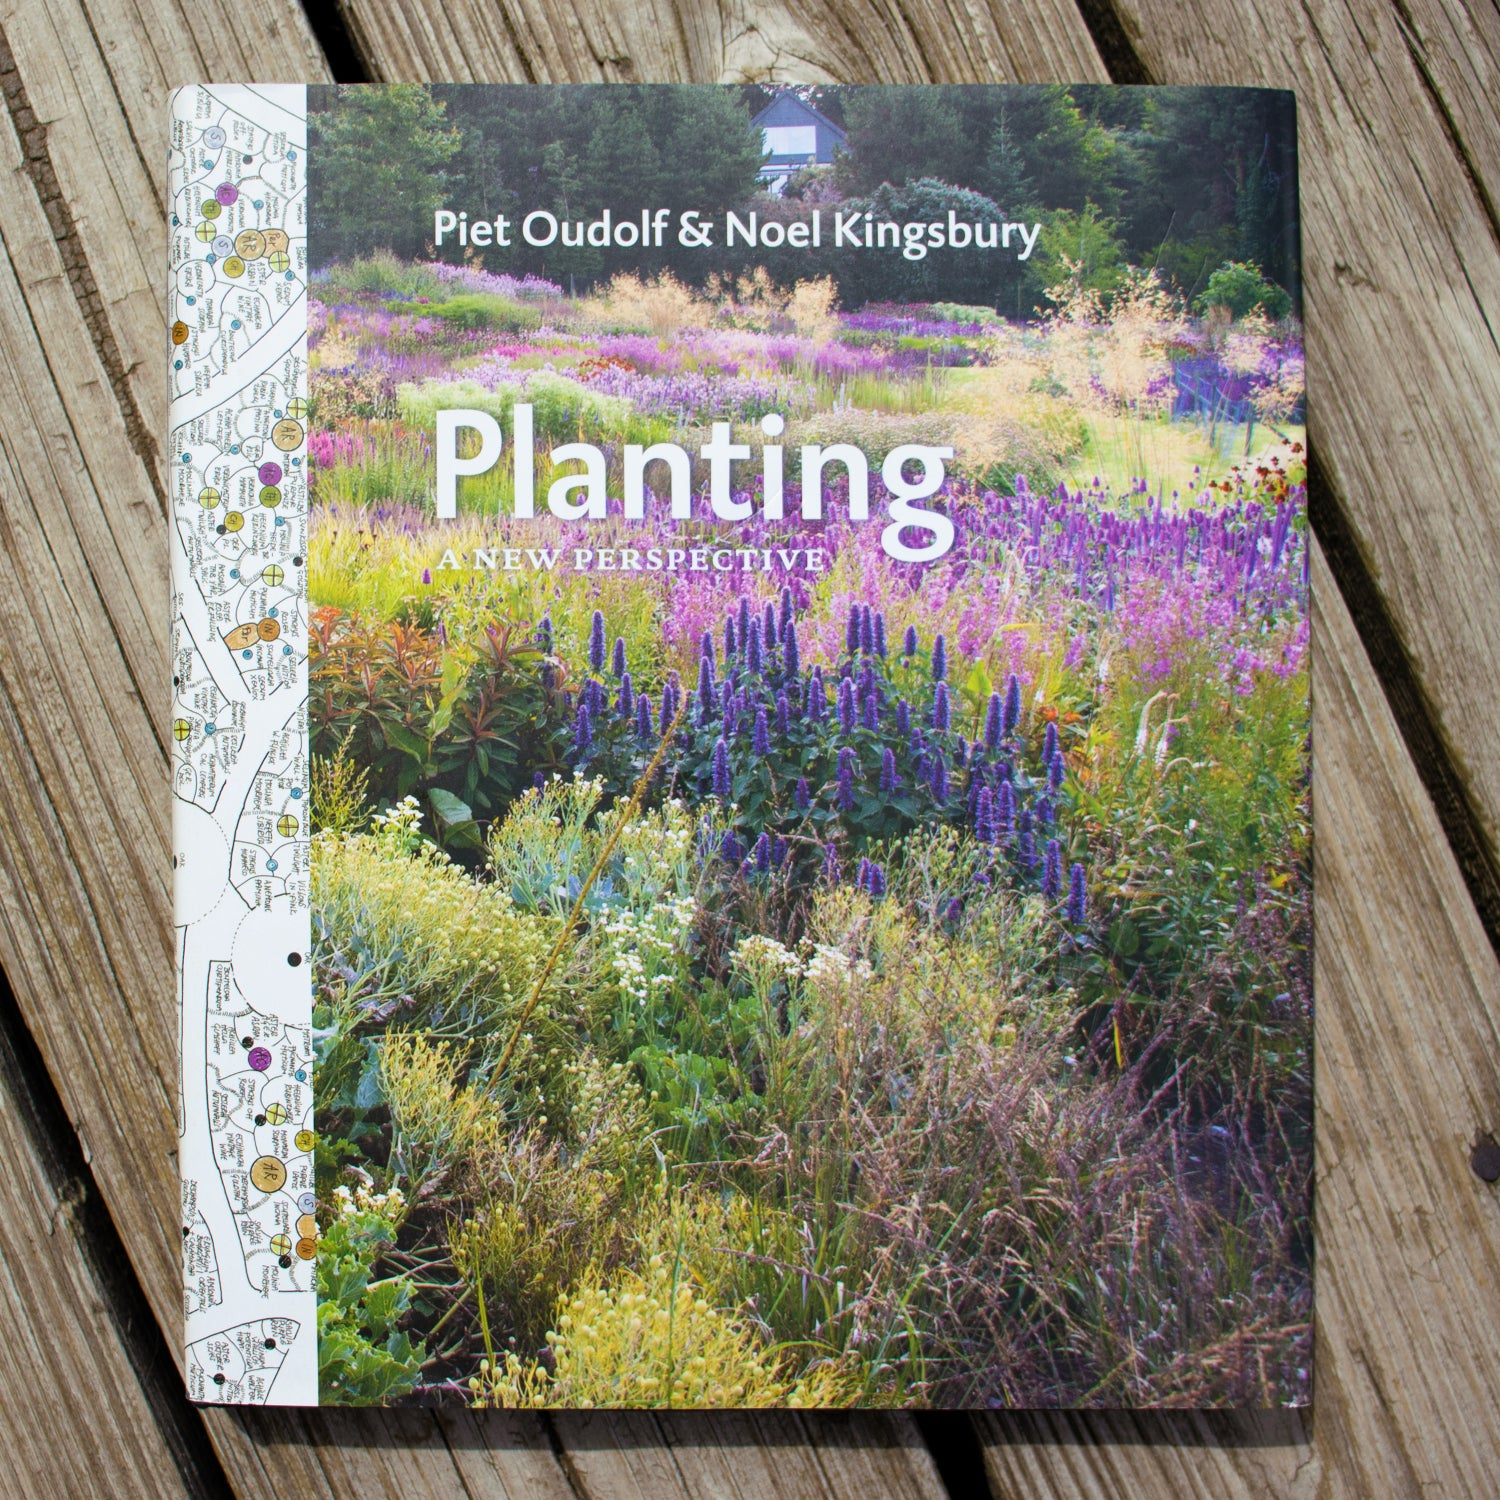 Image of Planting: A New Perspective by Piet Oudolf & Noel Kingsbury